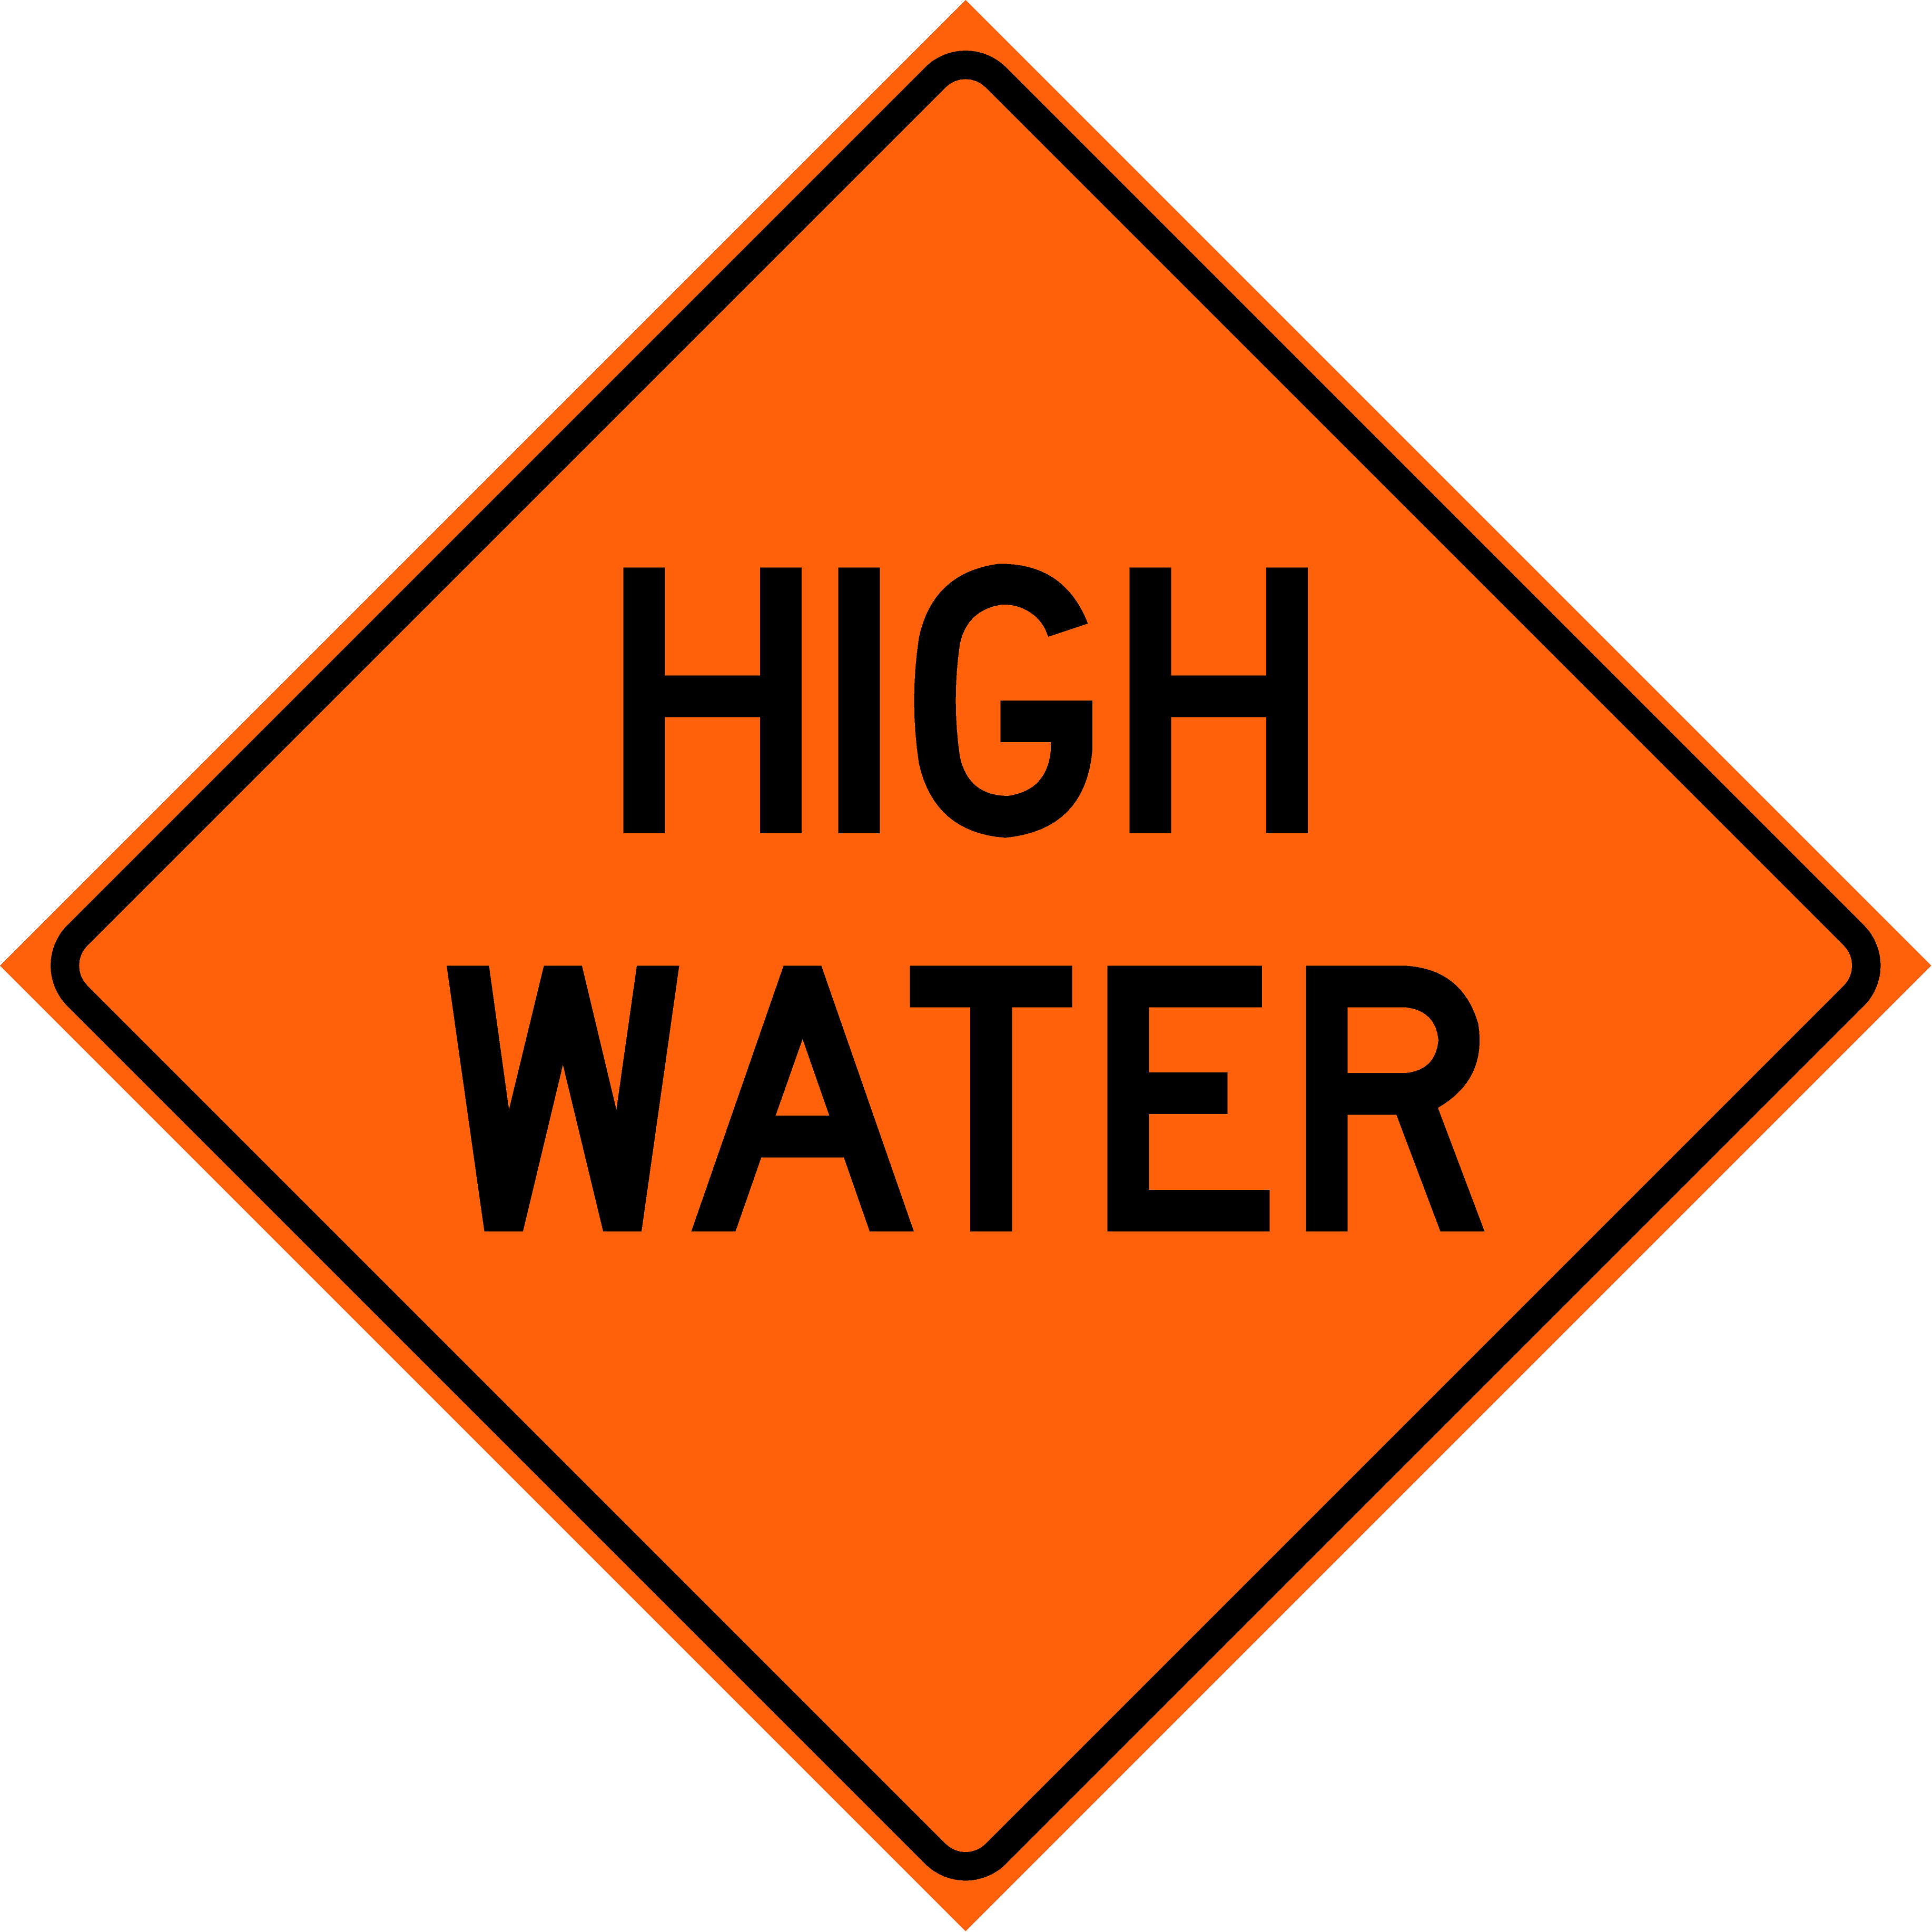 High Water (W8-H18a)